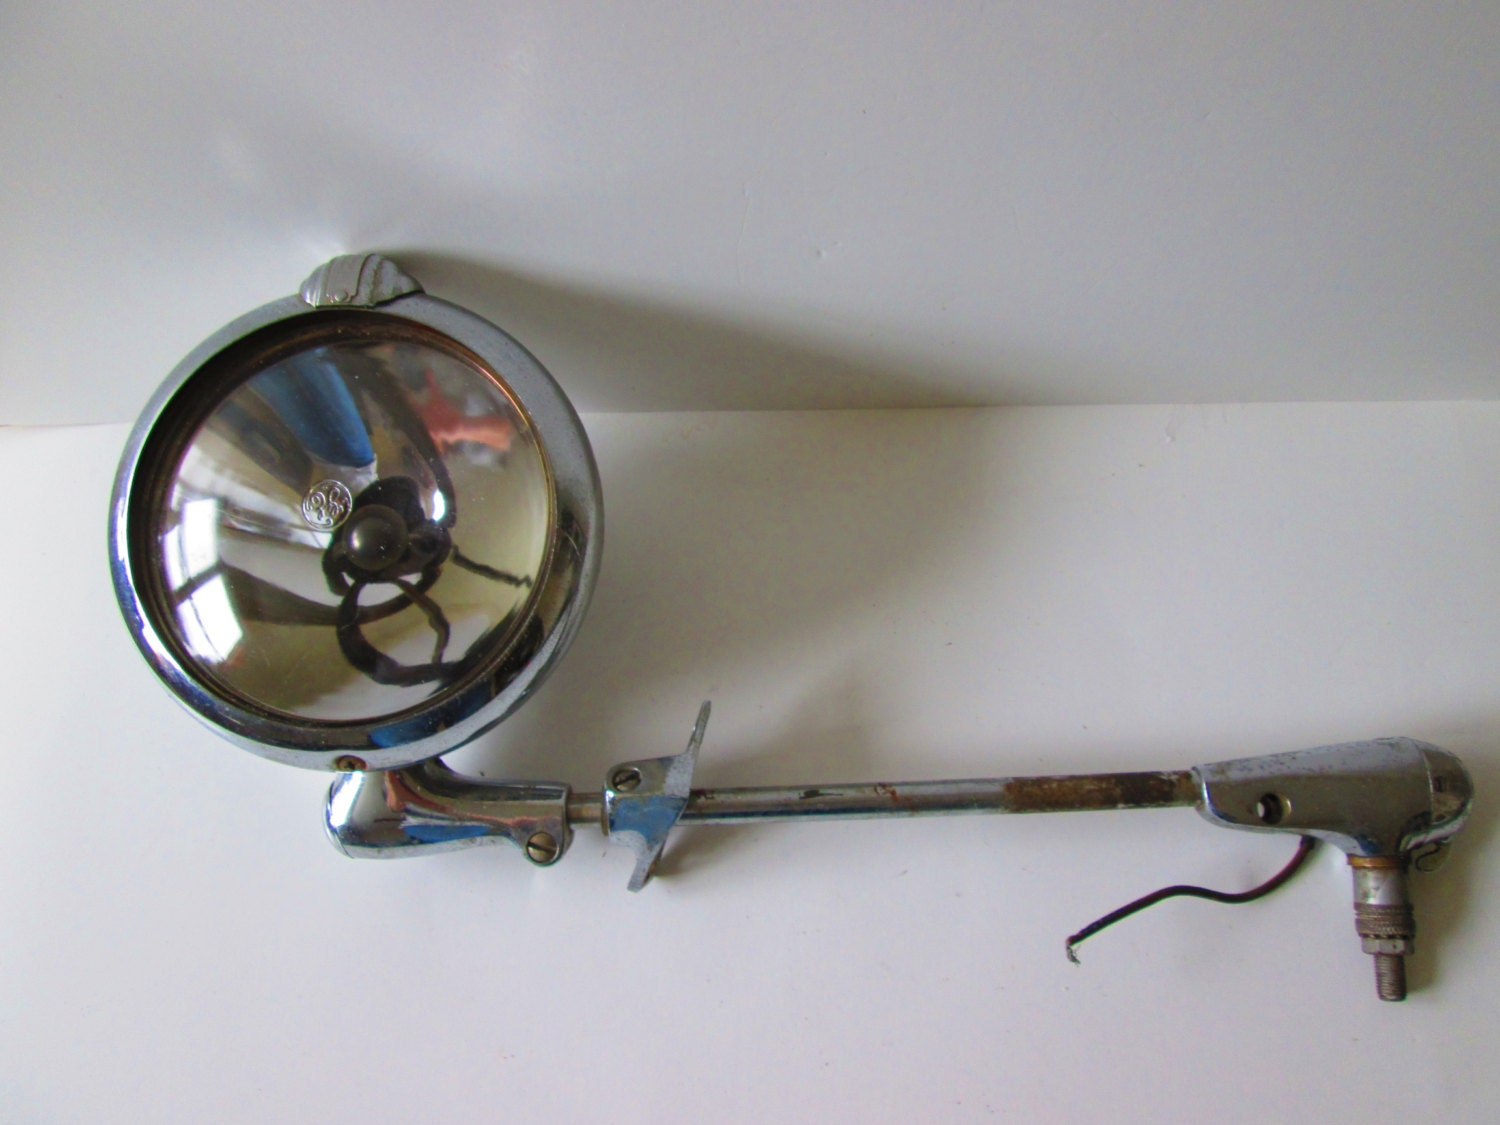 Vintage Police Car Spotlight Lamp Unity Model S6 With